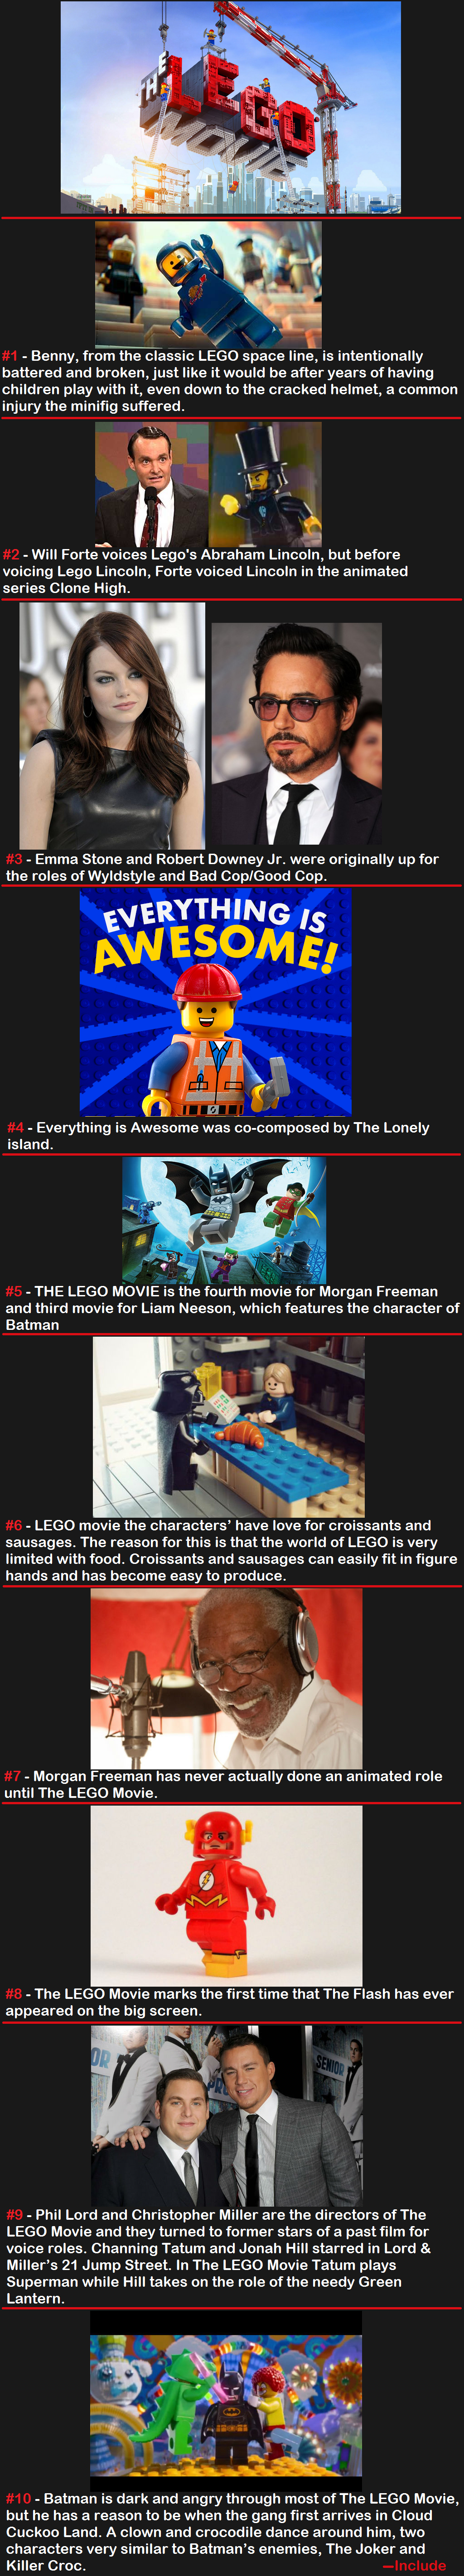 The LEGO Movie. Subscribe for more comps Thank for viewing ^_^.. As a Dane I can confirm noone in Denmark noticed this movie was special for being centered around LEGO until the internet pointed it out. Not because it was ill